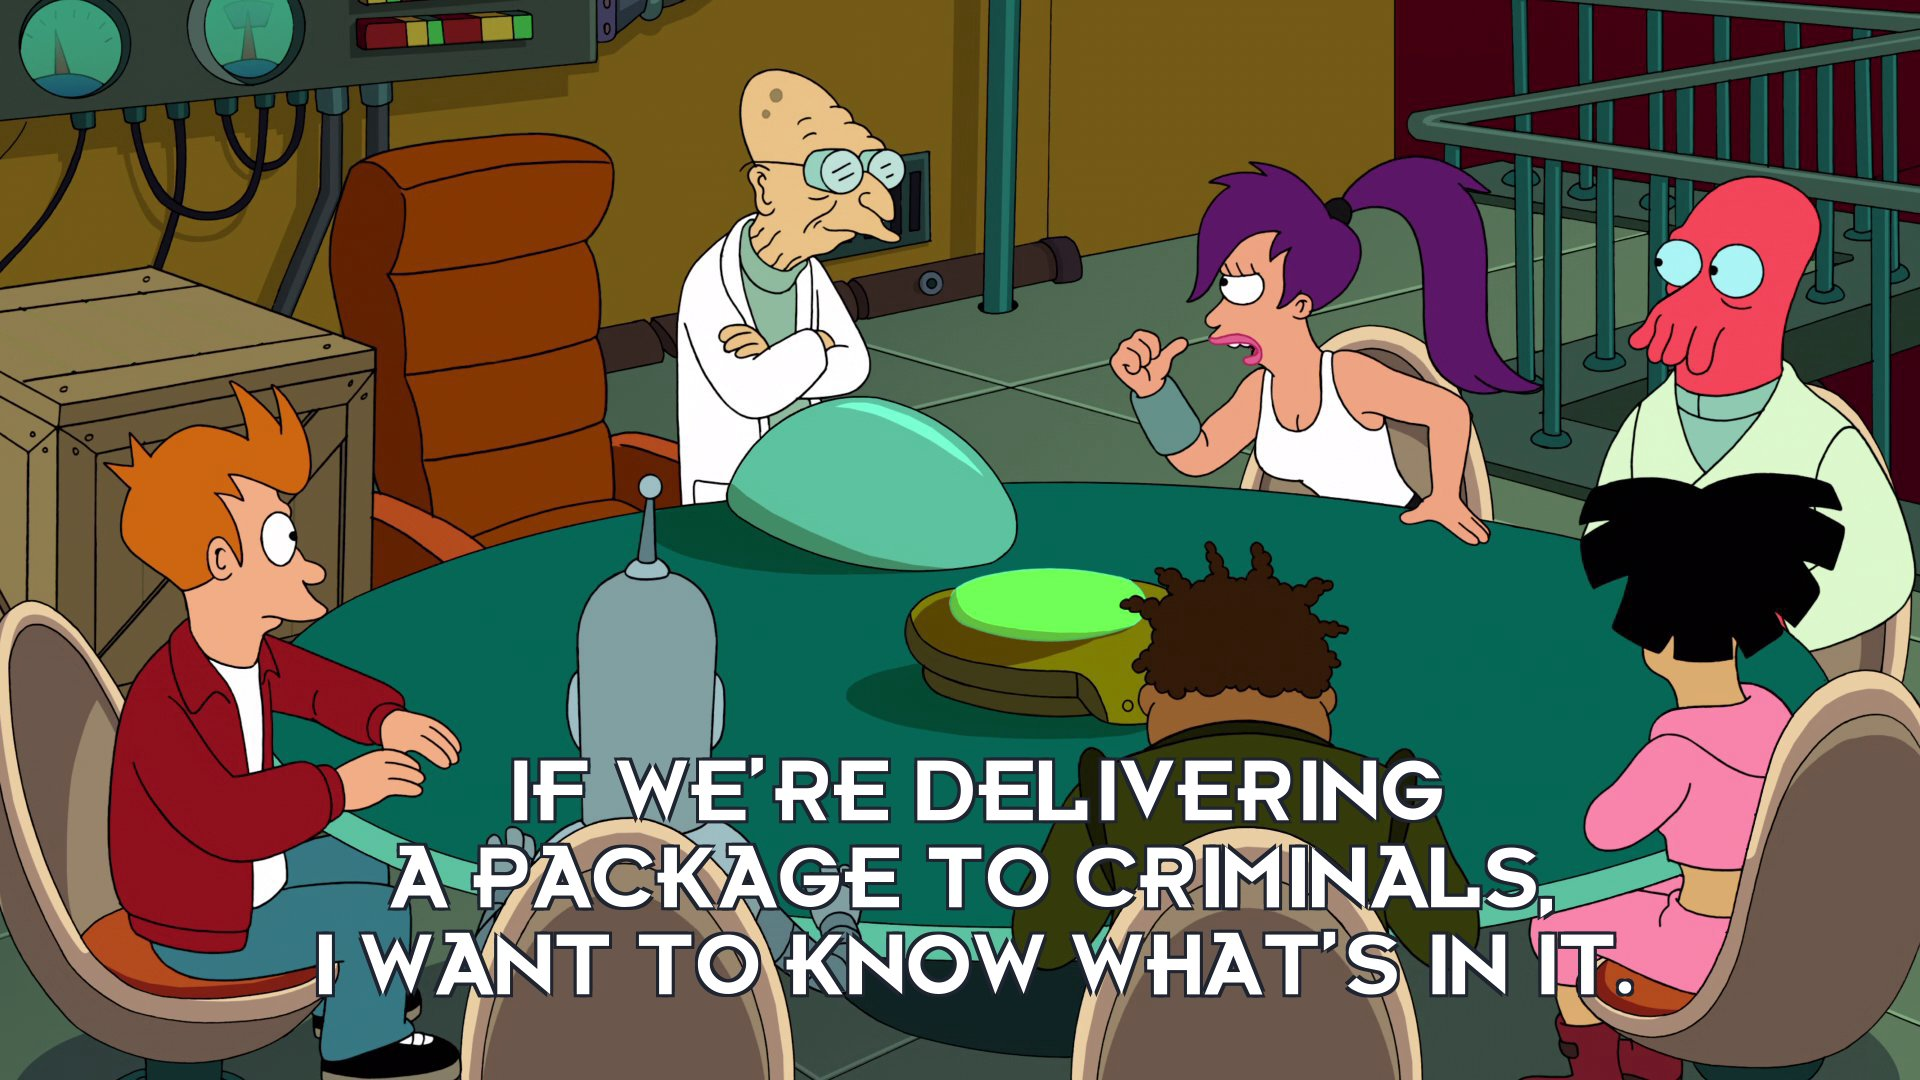 Turanga Leela: If we're delivering a package to criminals, I want to know what's in it.